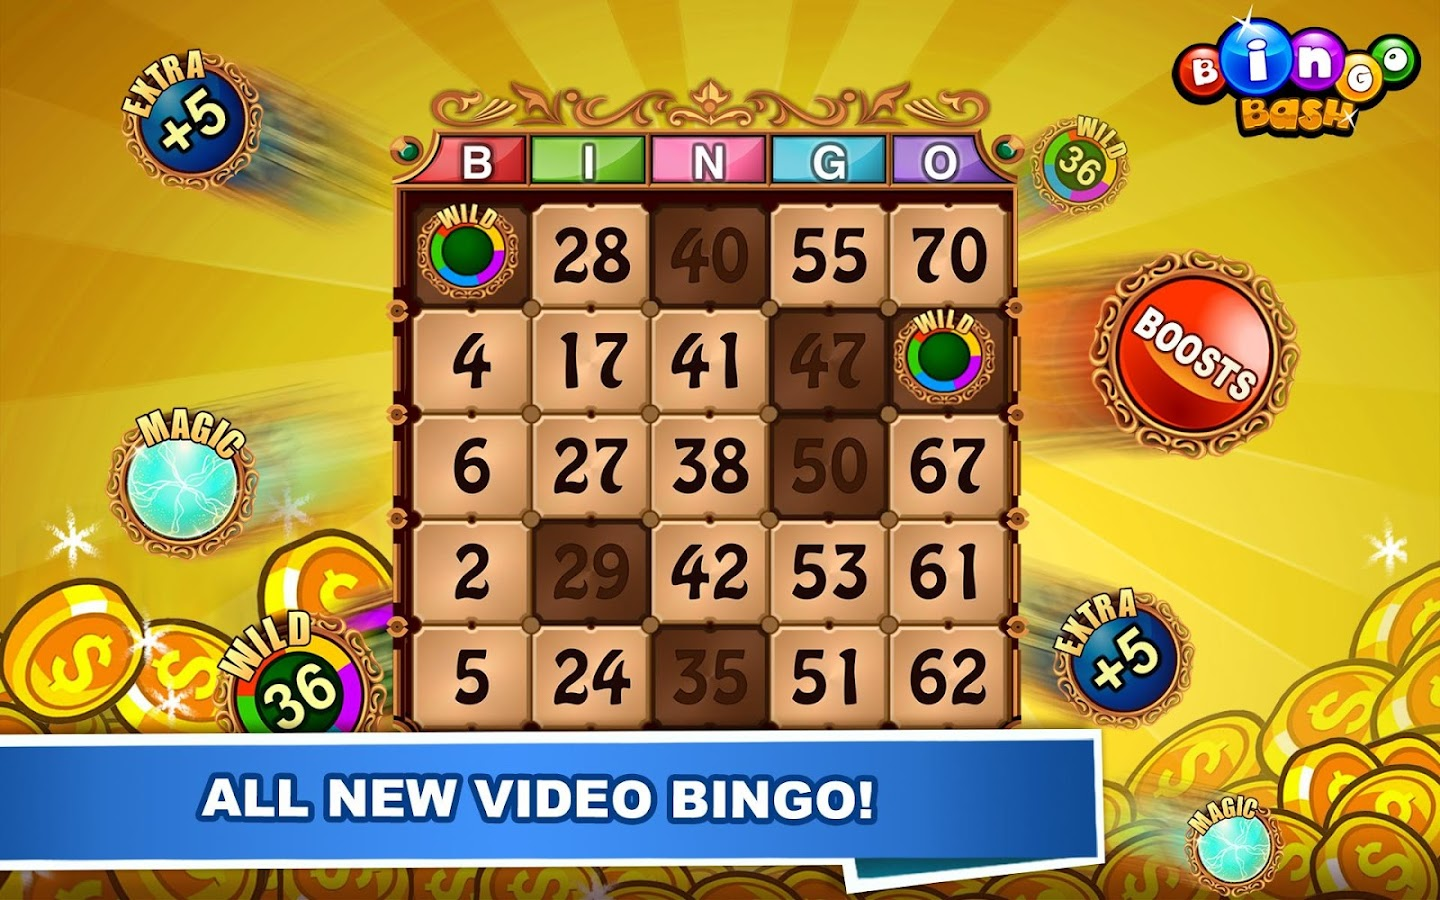 Bingo Bash - Fun Bingo Games - screenshot